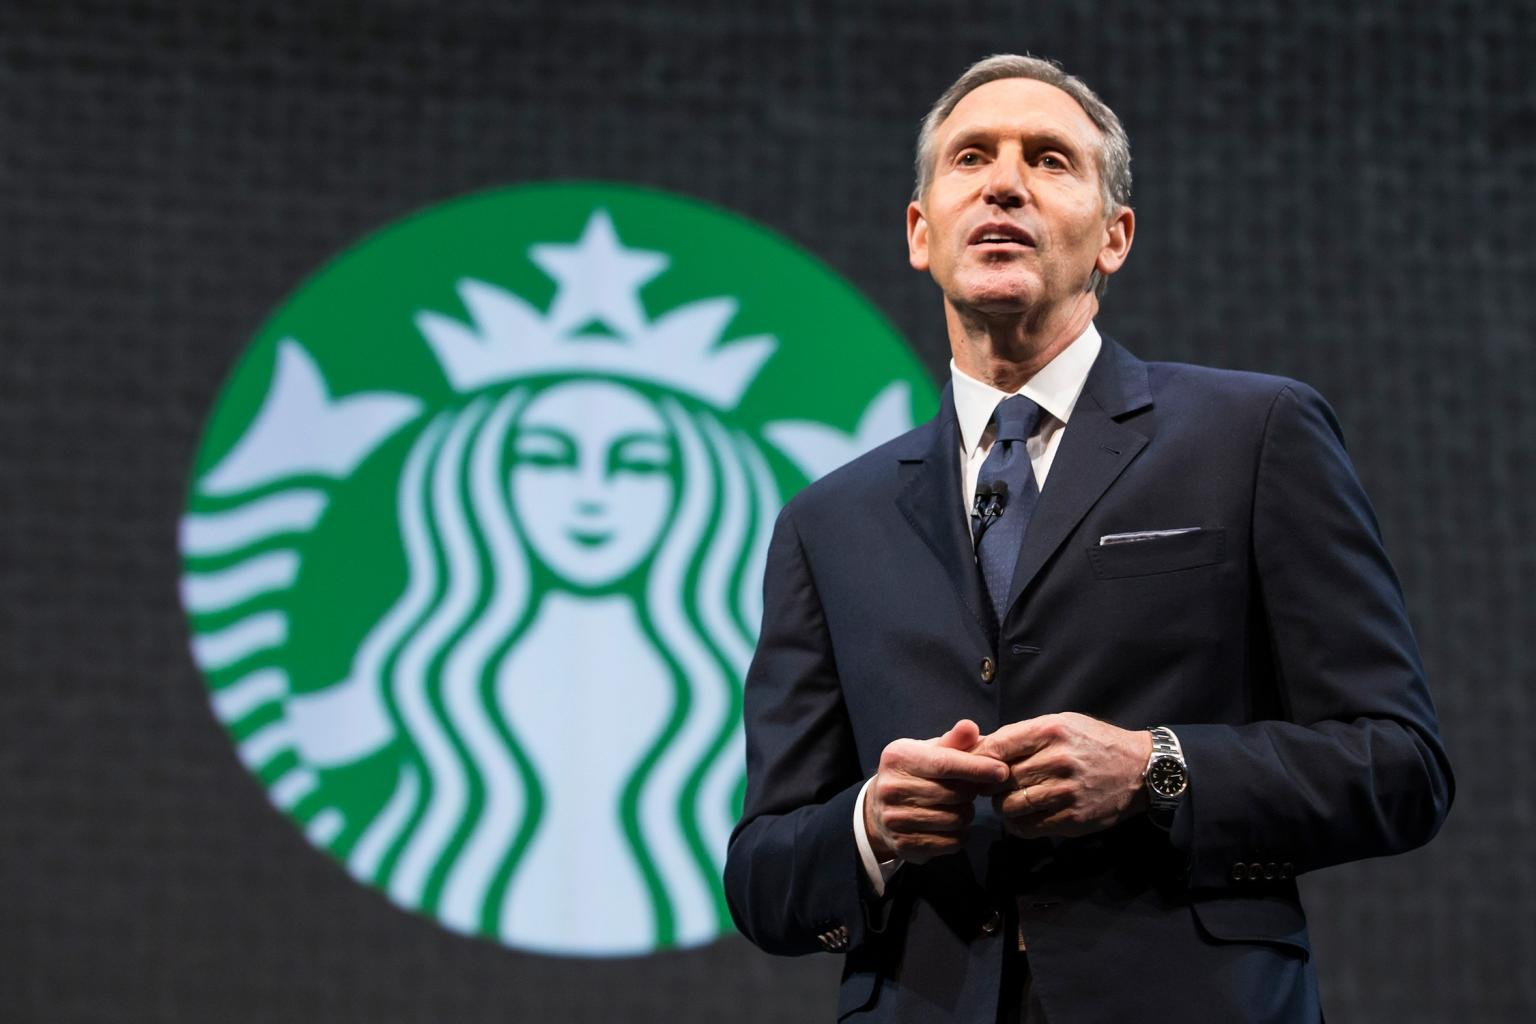 Starbucks CEO Howard Schultz Attributes Coffee Empire to His Upbringing in Brooklyn Projects